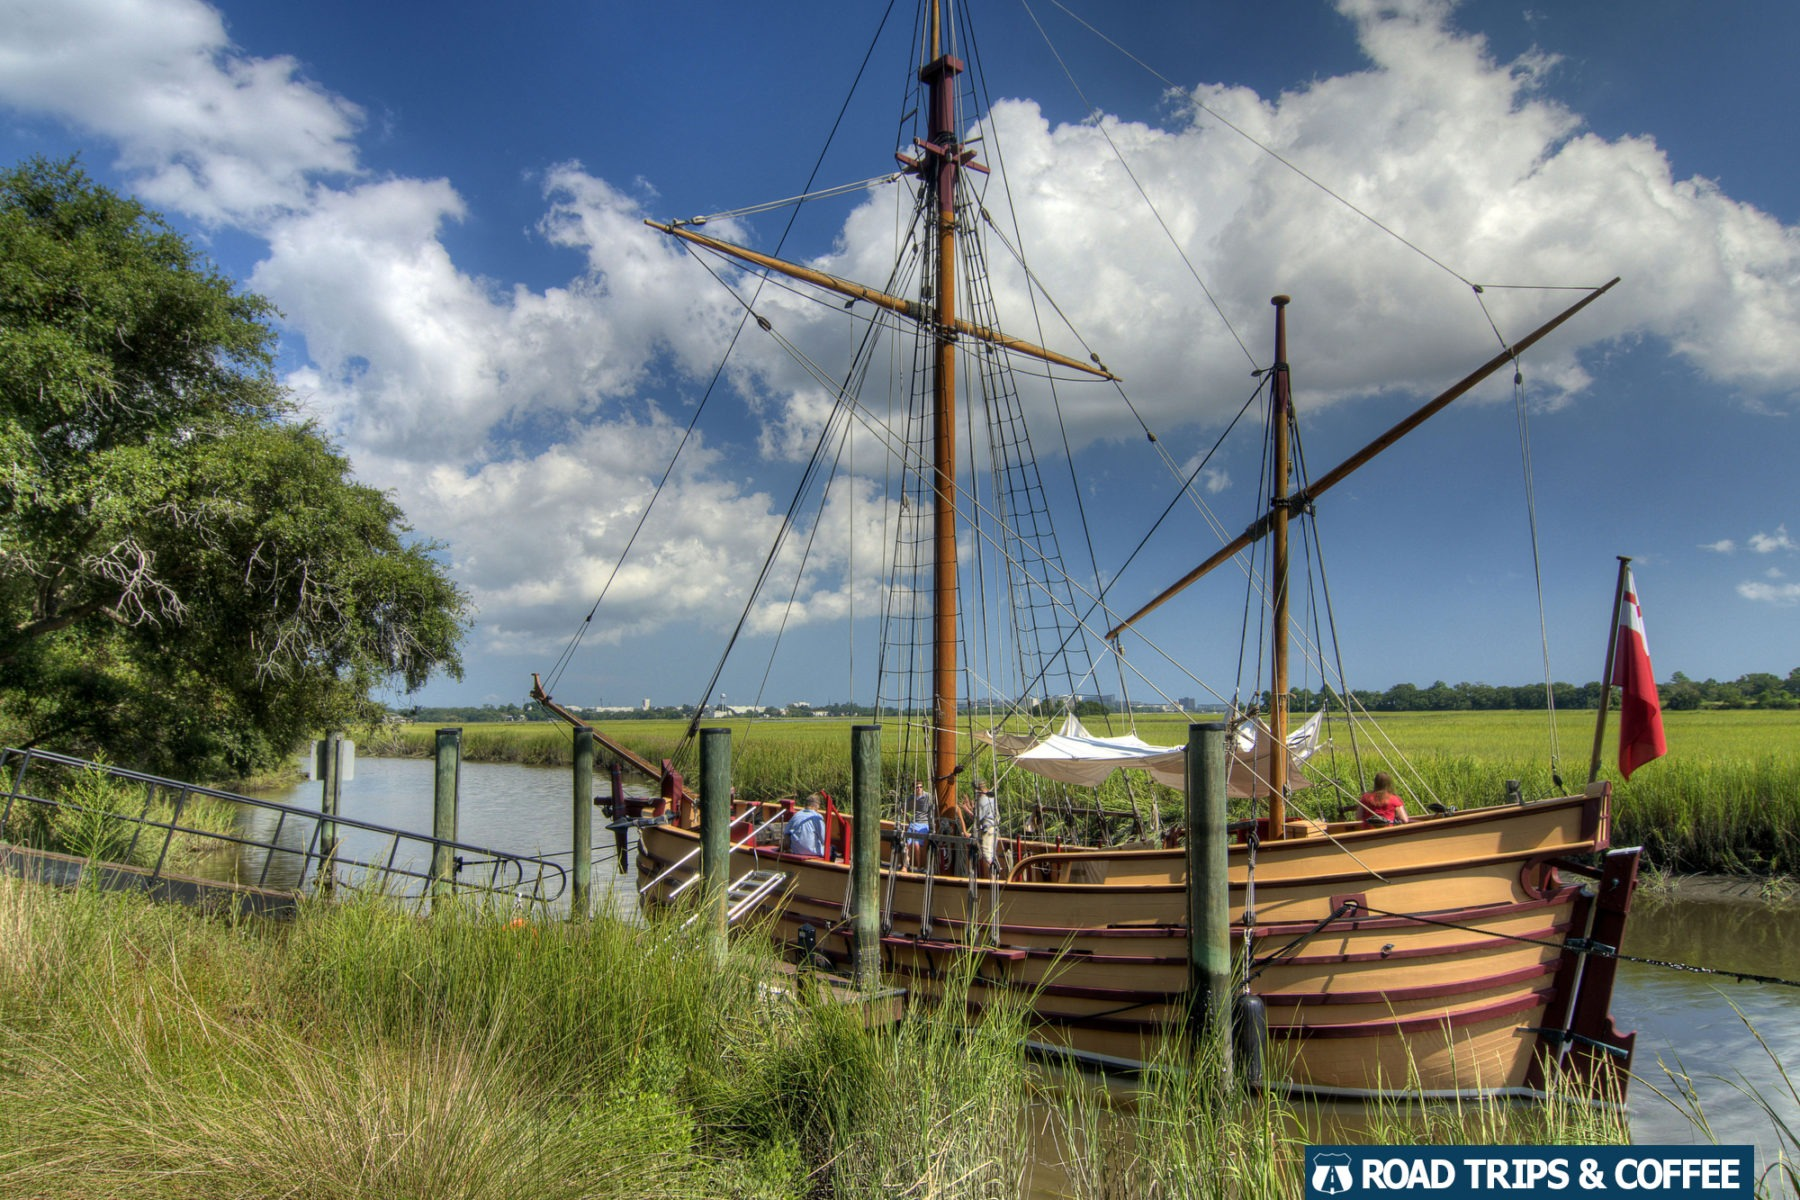 The Adventure sailing ship at Charles Towne Landing State Historic Site in Charleston, South Carolina